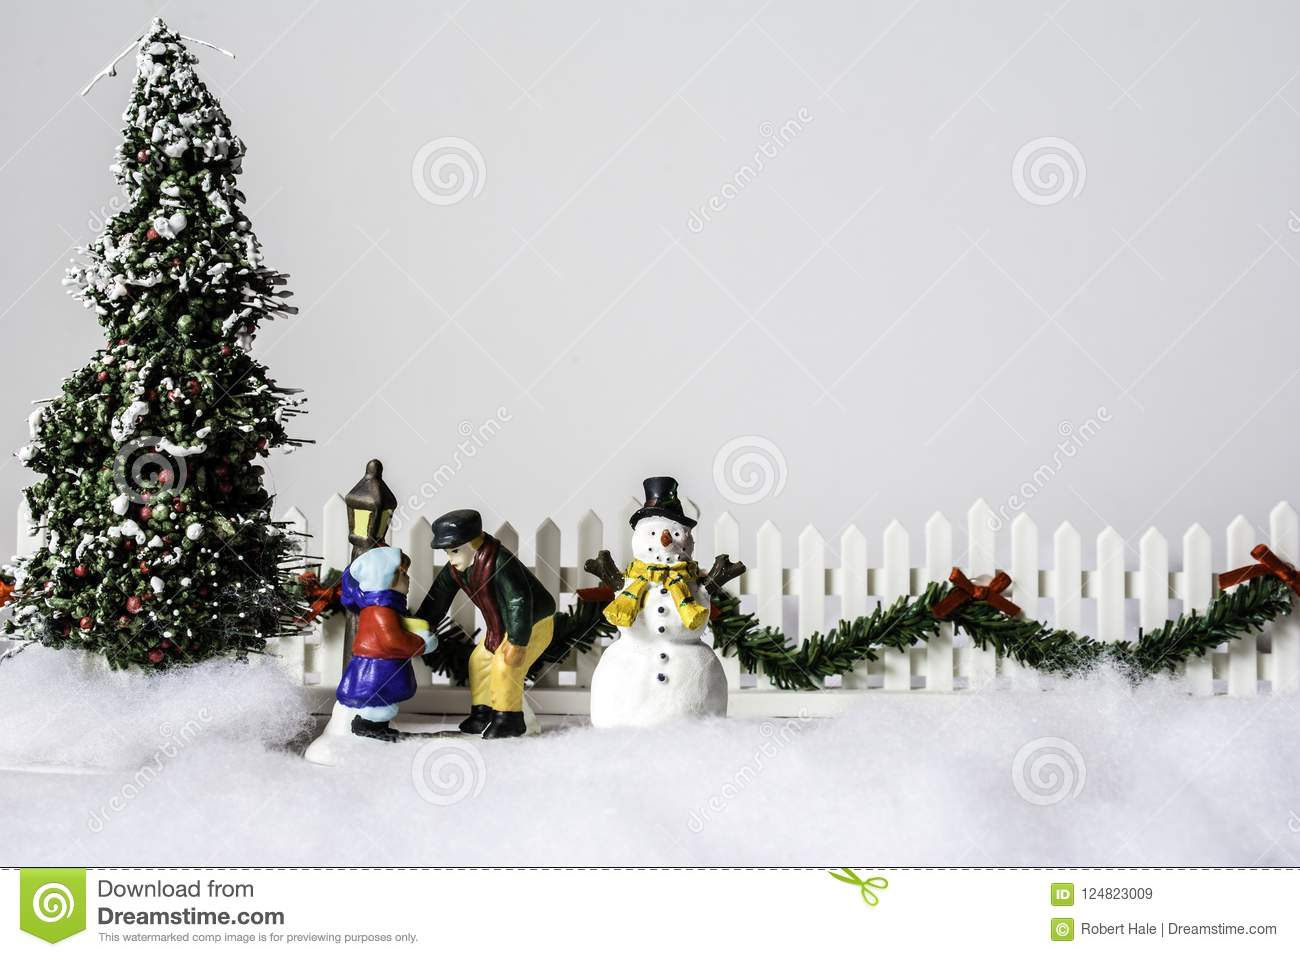 Christmas Tree And Snow Man Stock Image - Image of presents, crafts ...